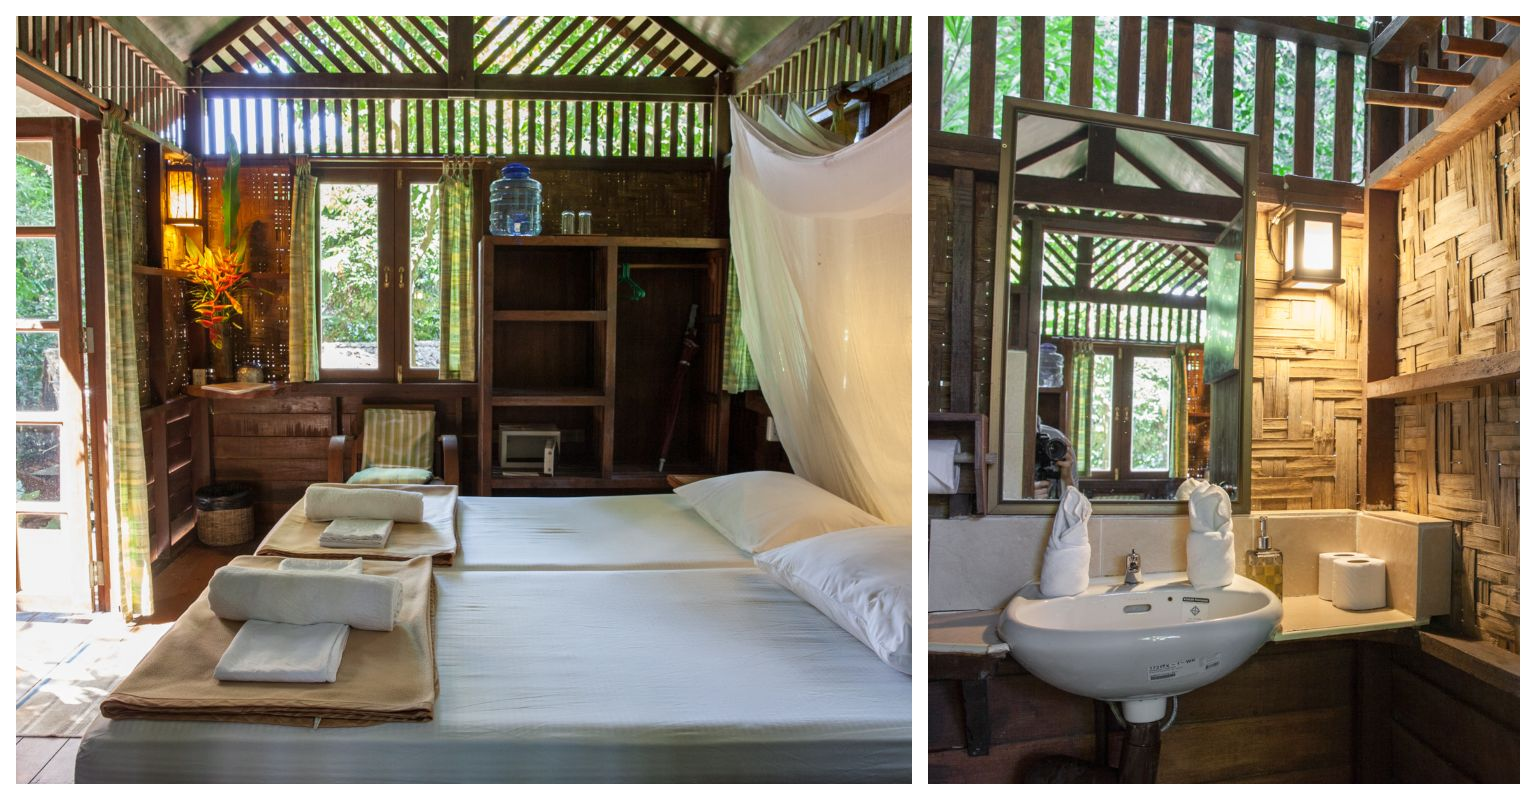 Boomhut met bed en wastafel in Our Jungle House, Khao Sok